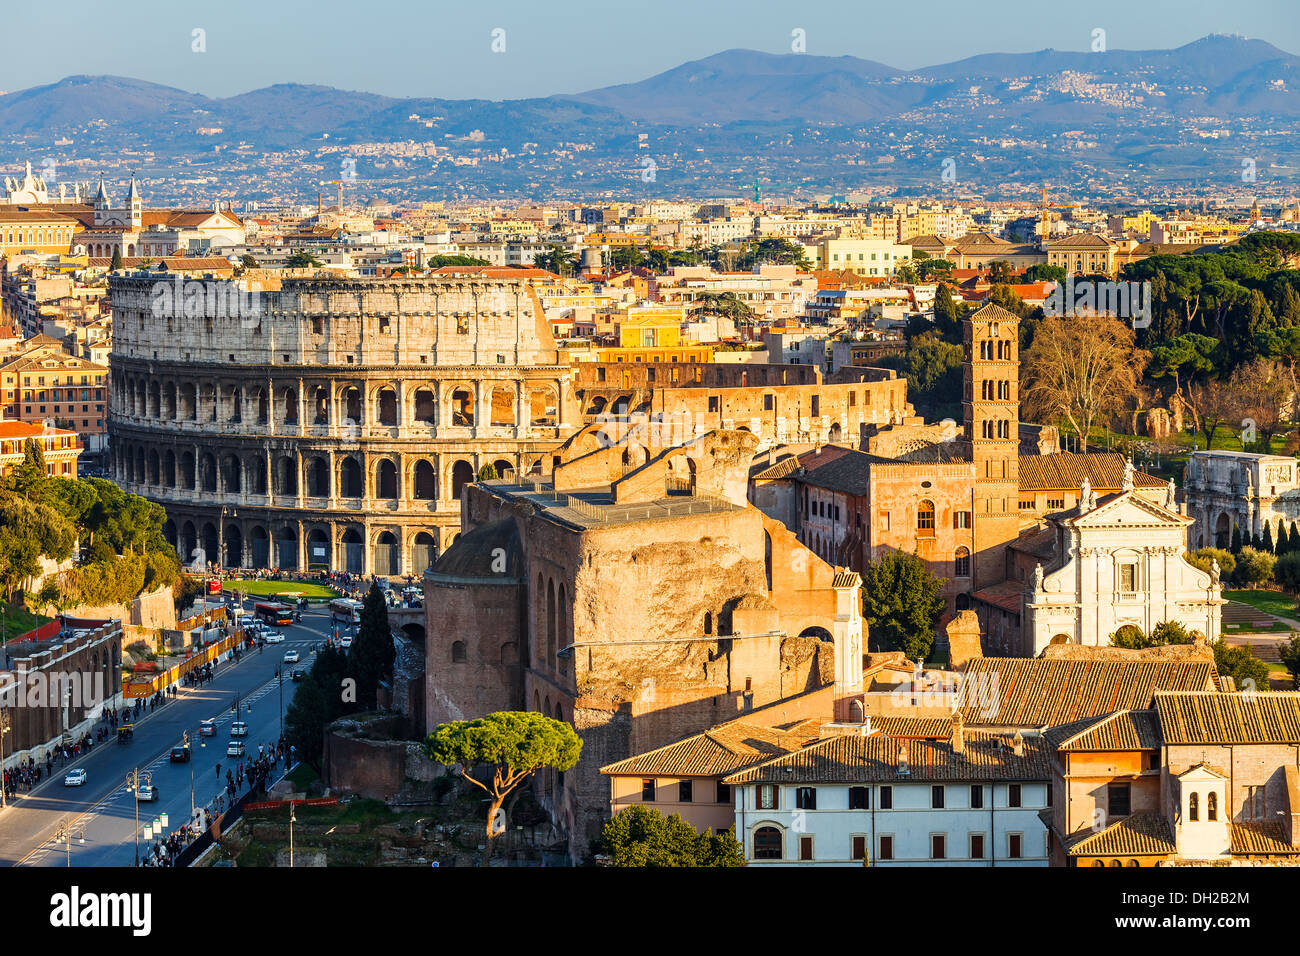 Colosseum at sunset - Stock Image